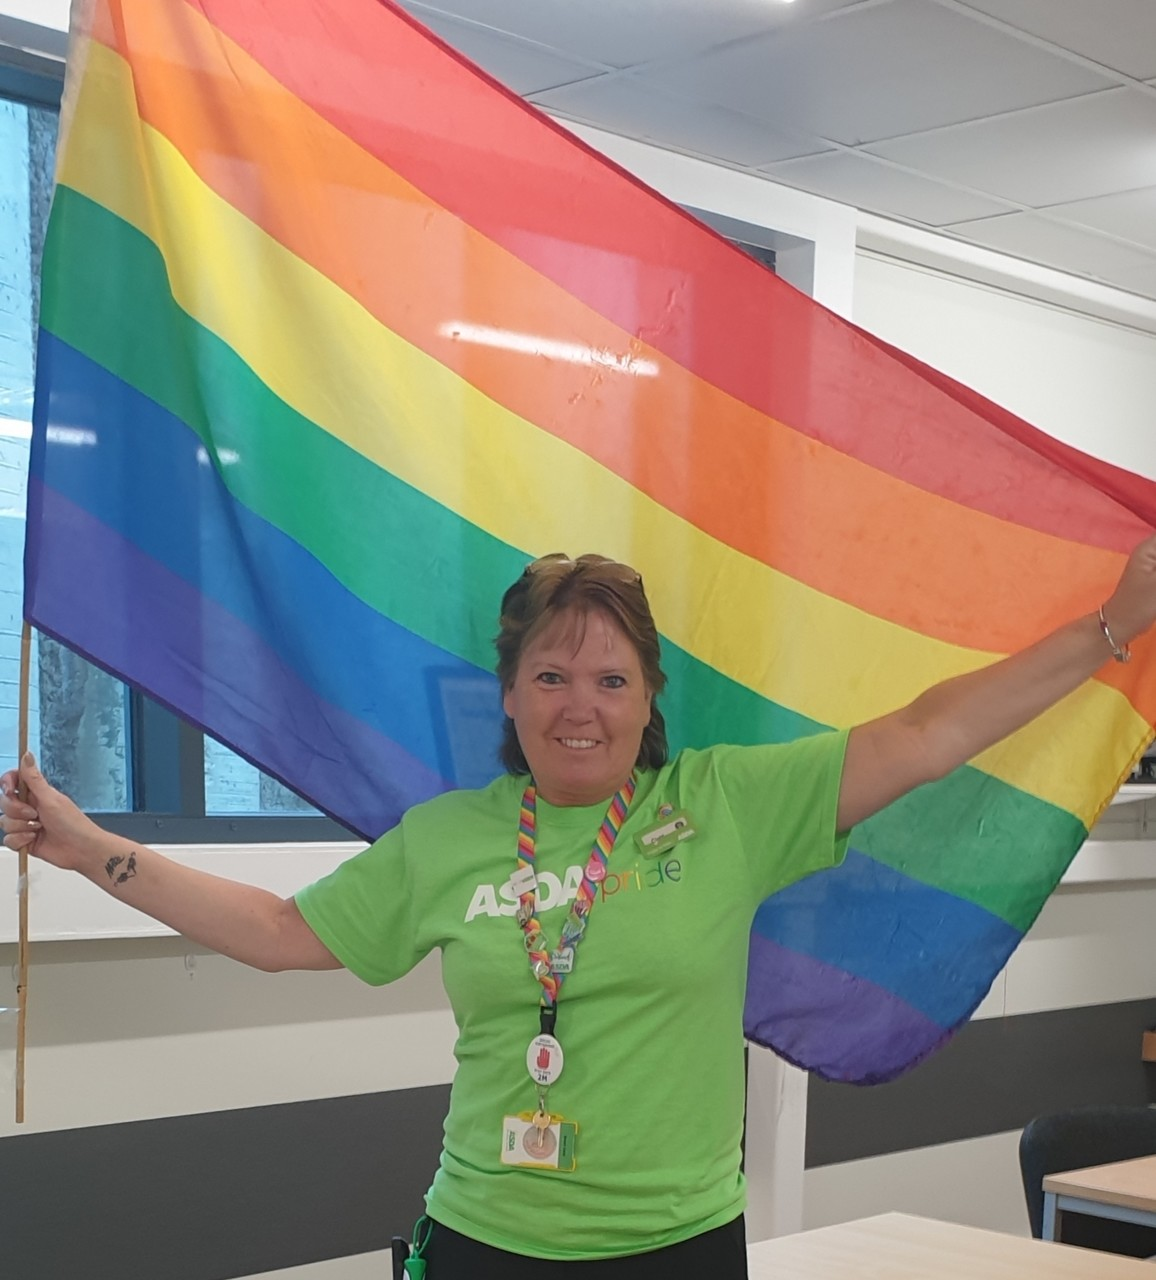 Flying the flag for Rainbow week  | Asda Newport Isle of Wight